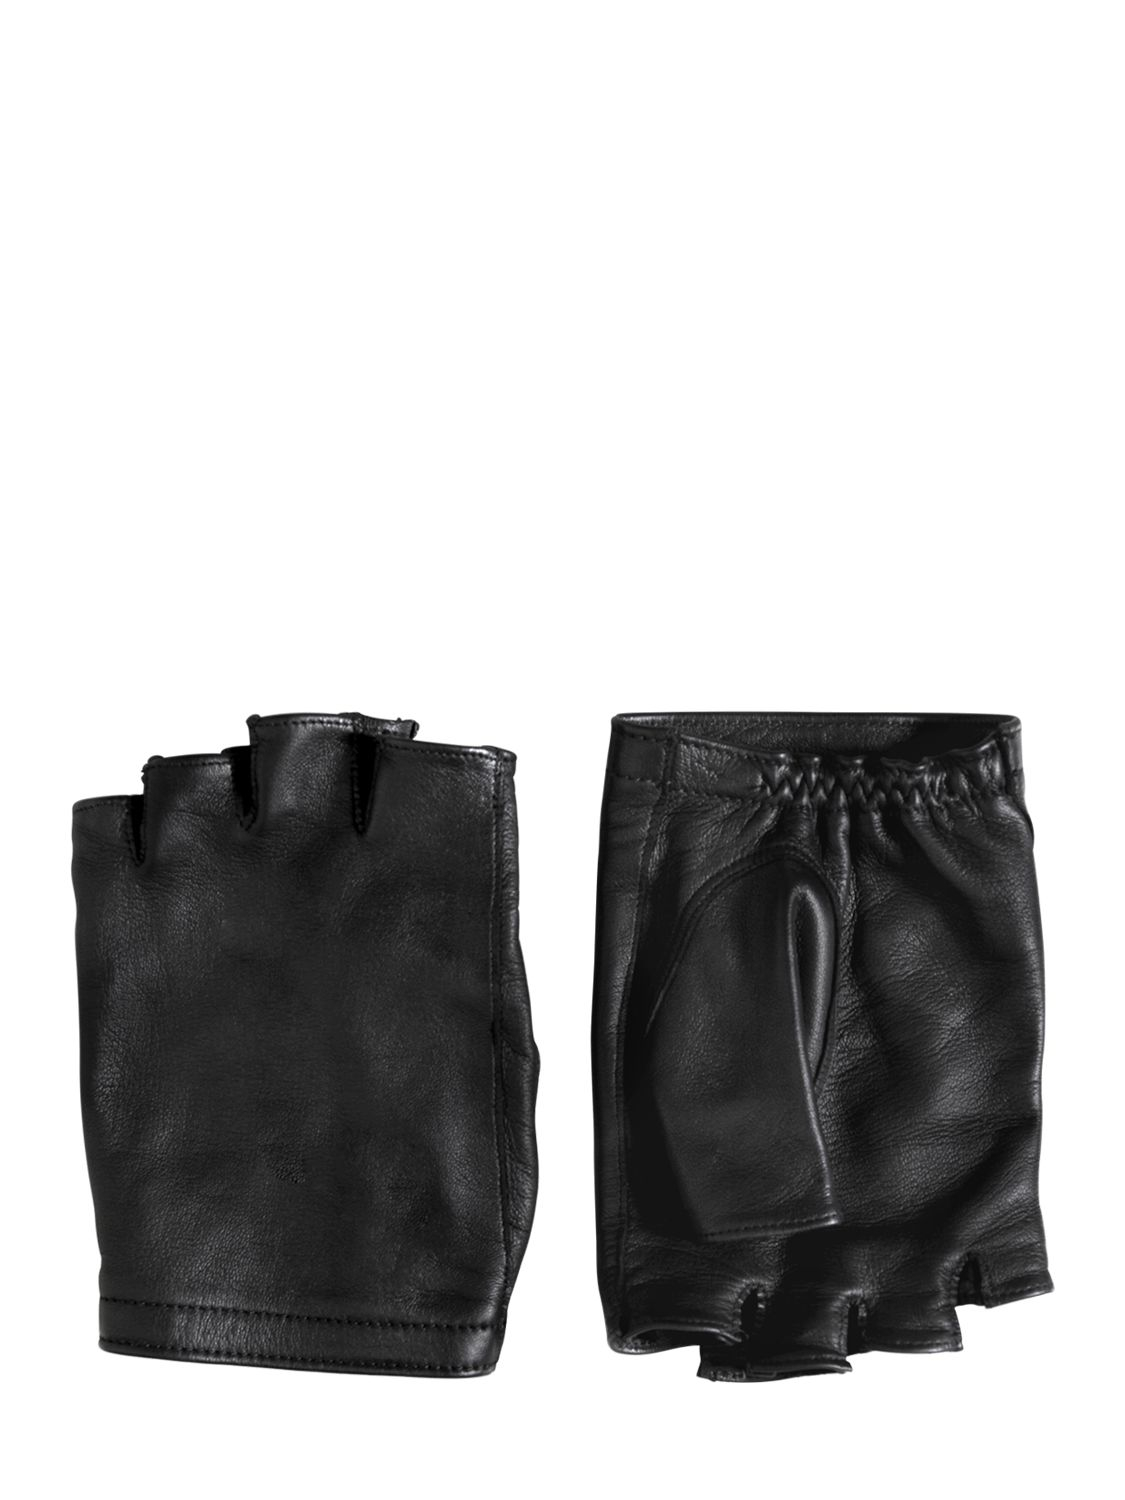 John varvatos leather driving gloves - Gallery